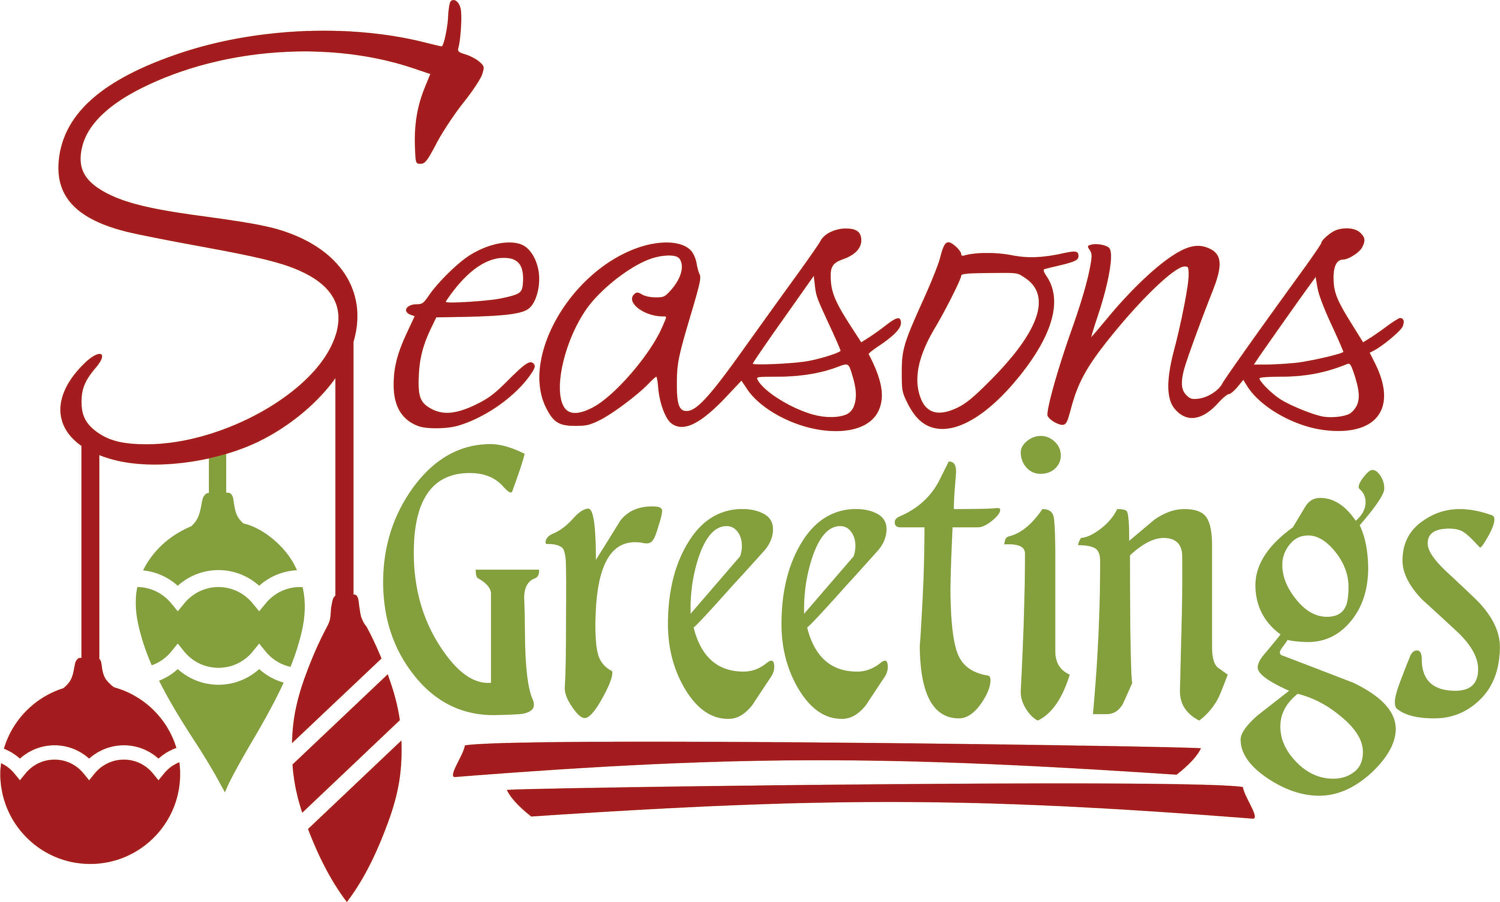 Seasons Greetings Clipart & Seasons Greetings Clip Art Images.